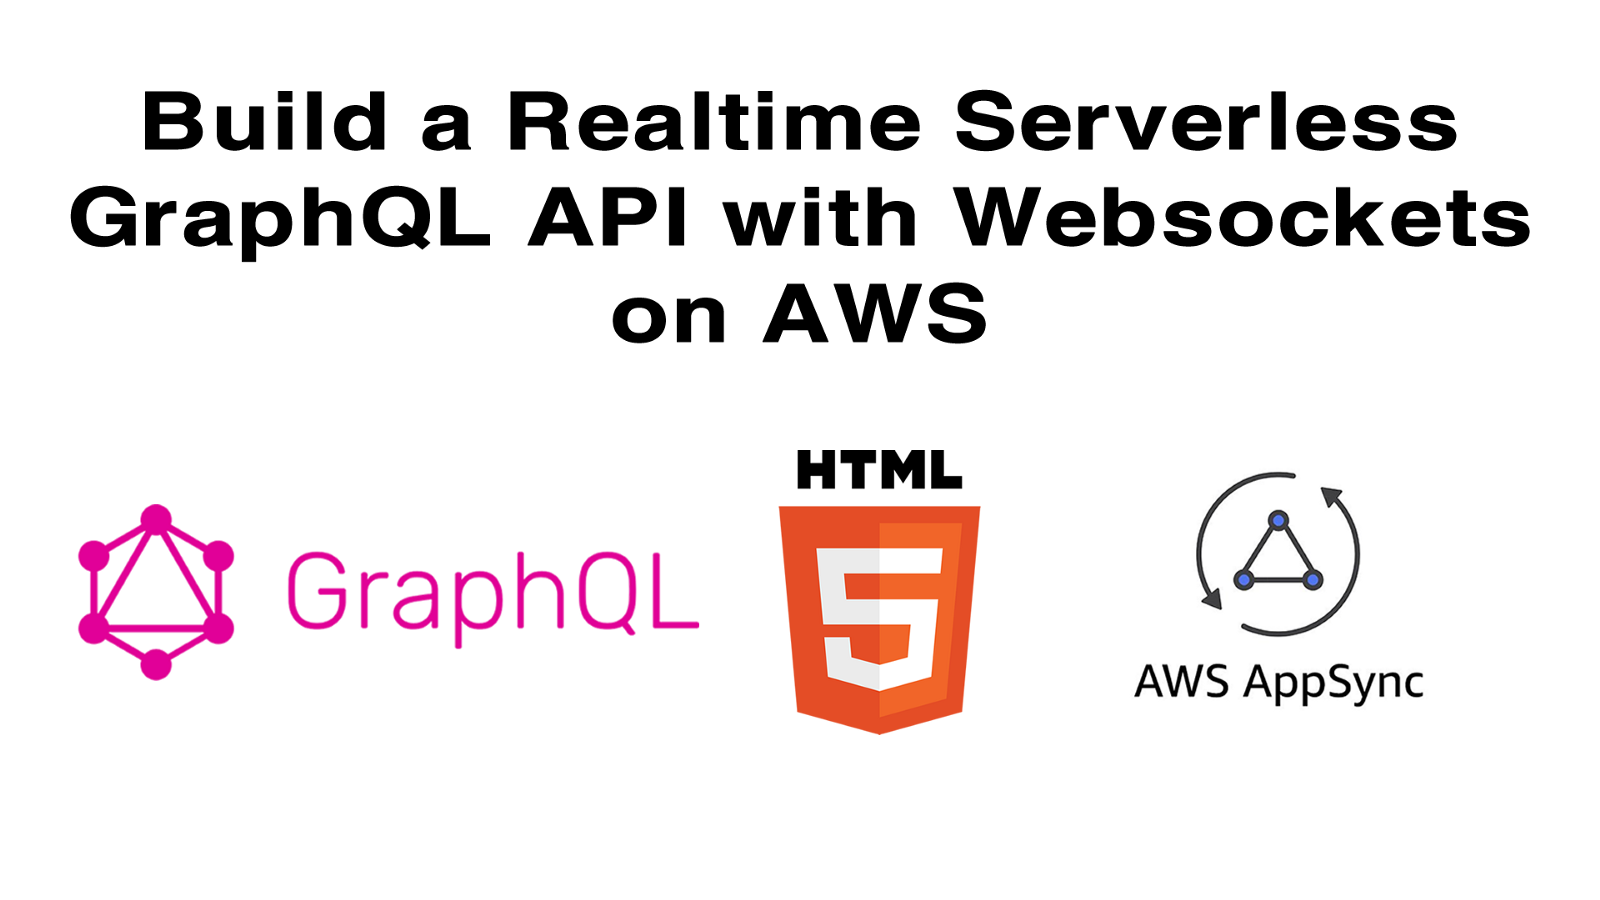 Build a Realtime Serverless GraphQL API with Websockets on AWS - By